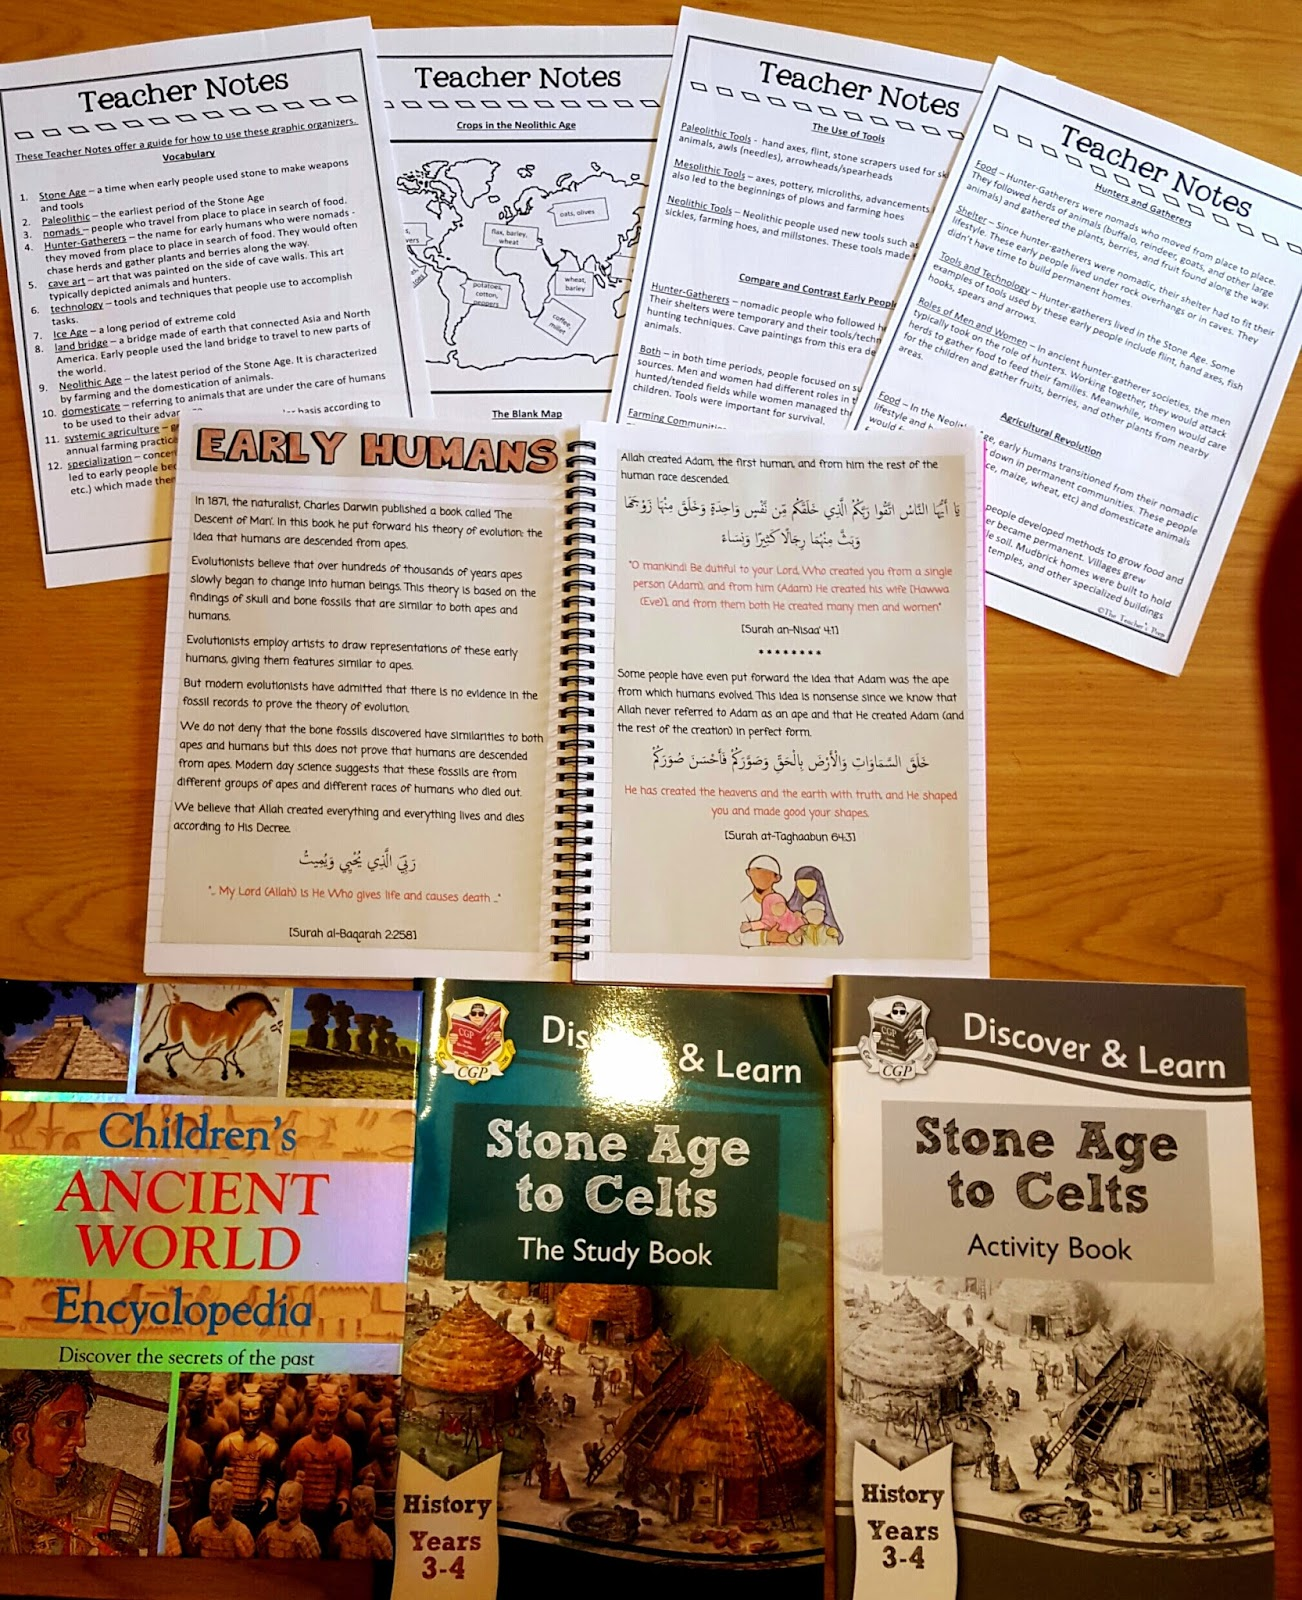 Iman S Home School Early Humans An Islamic Perspective